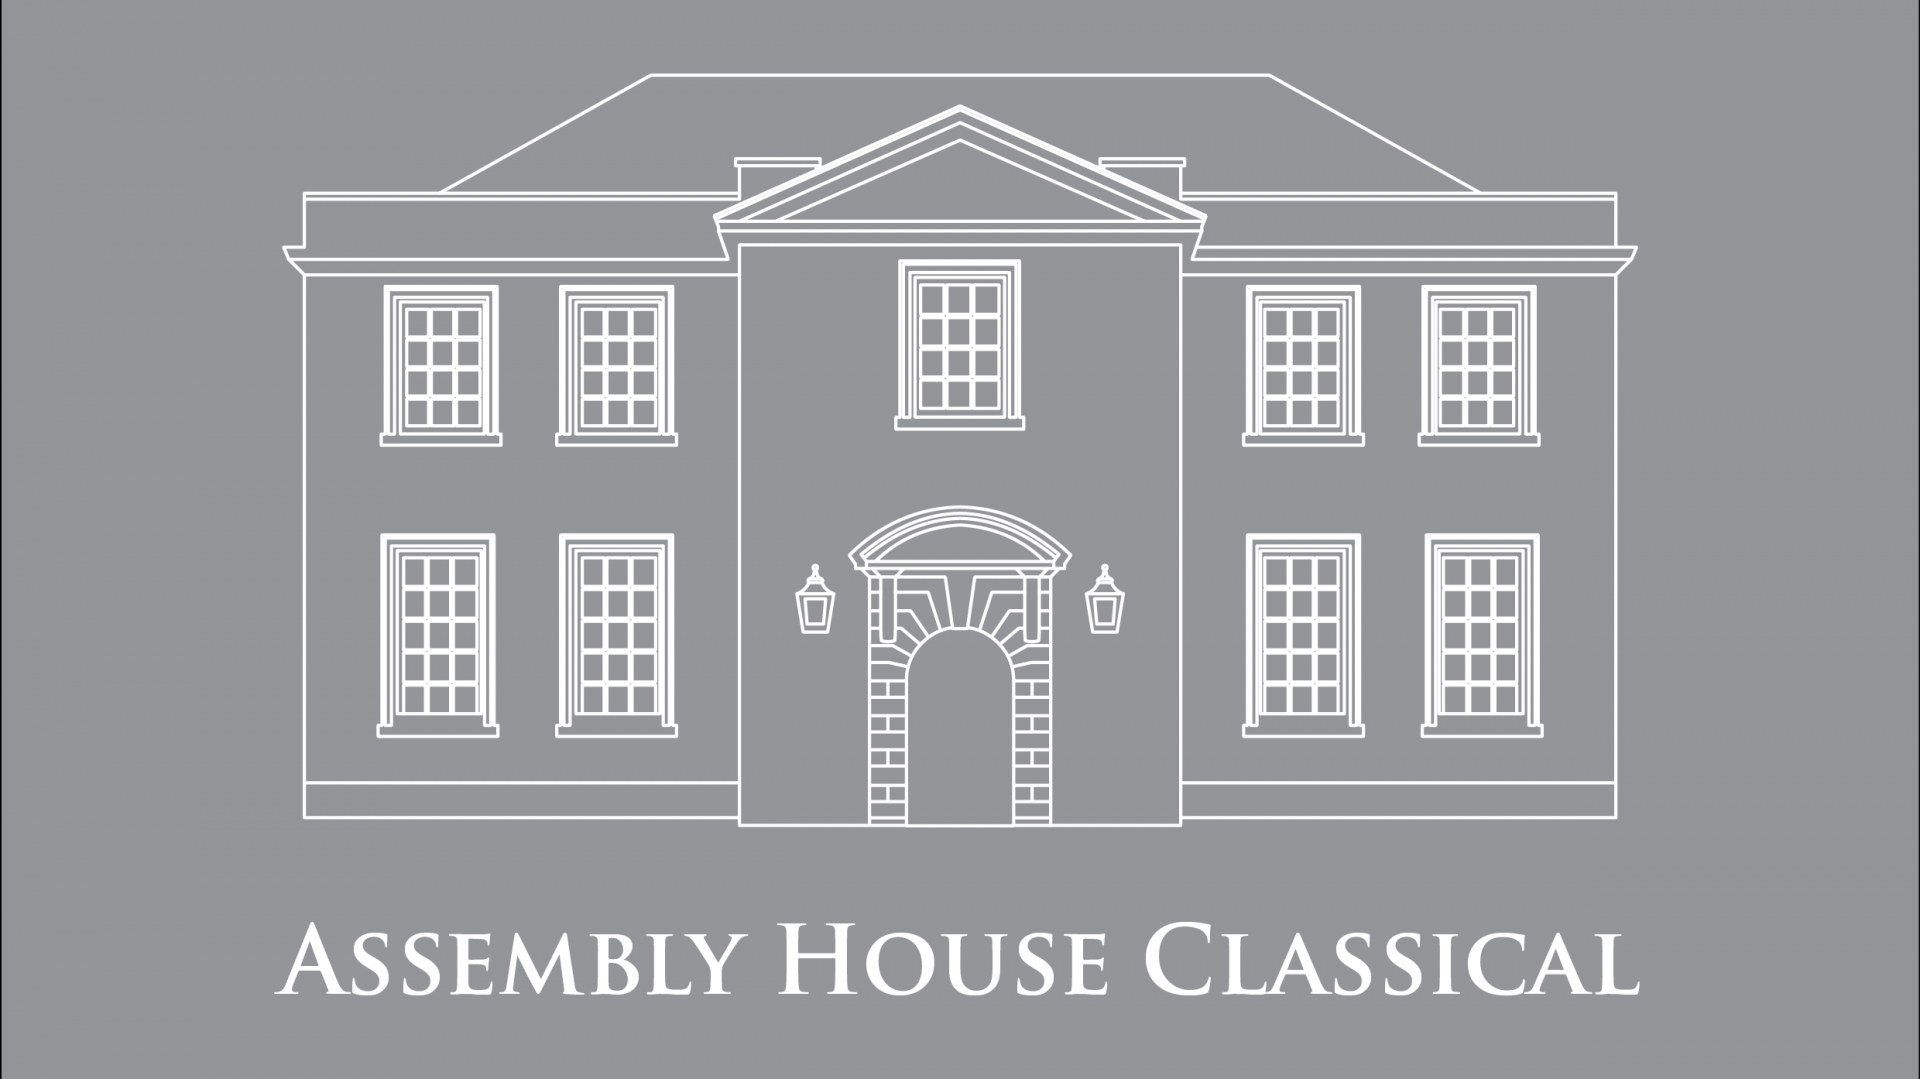 Assembly House Classical